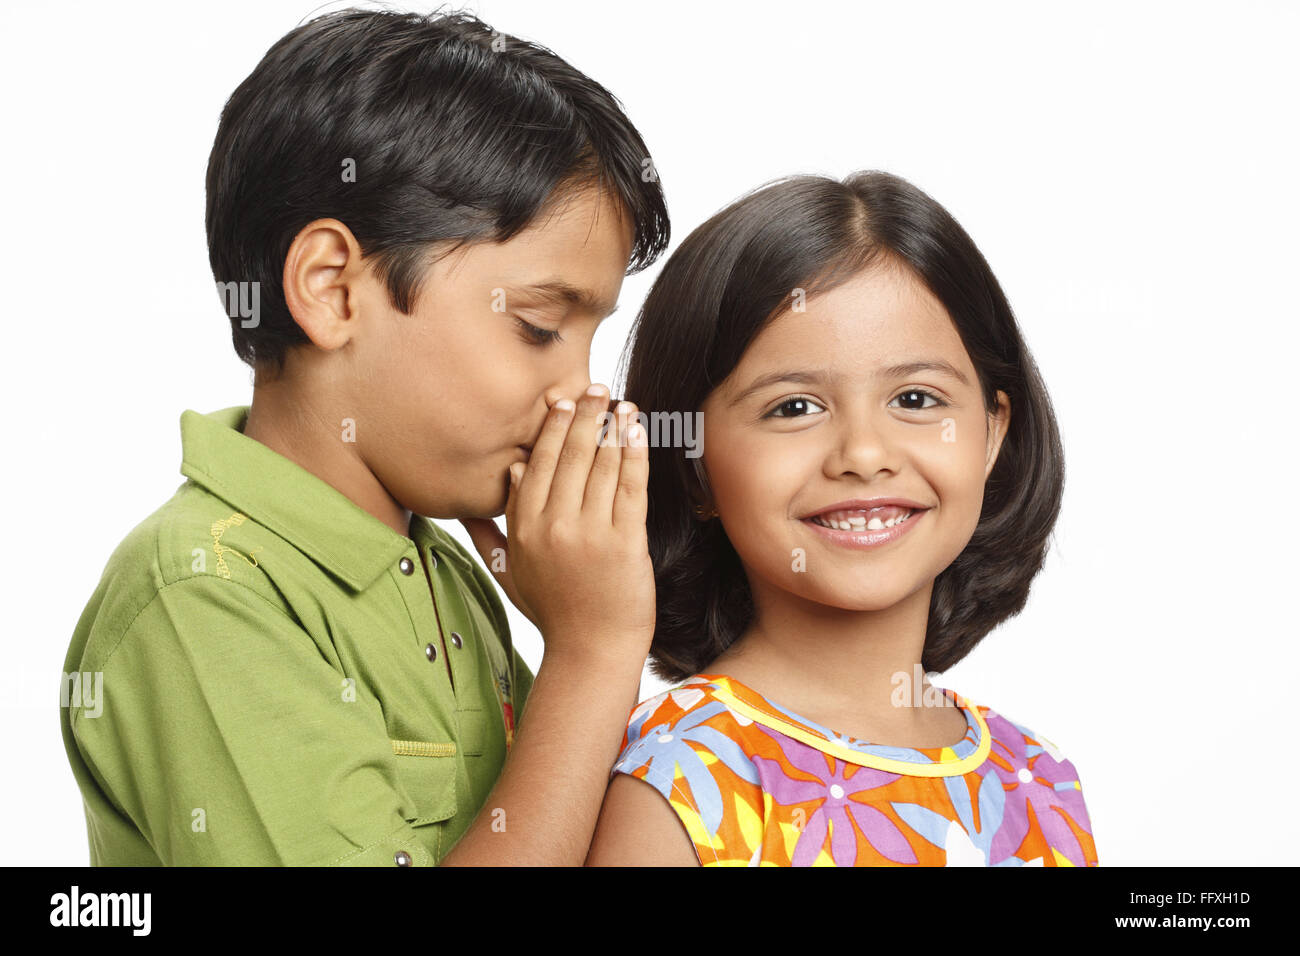 Ten year old boy whispering something in eight year old girl's ear MR# 703U,703V - Stock Image